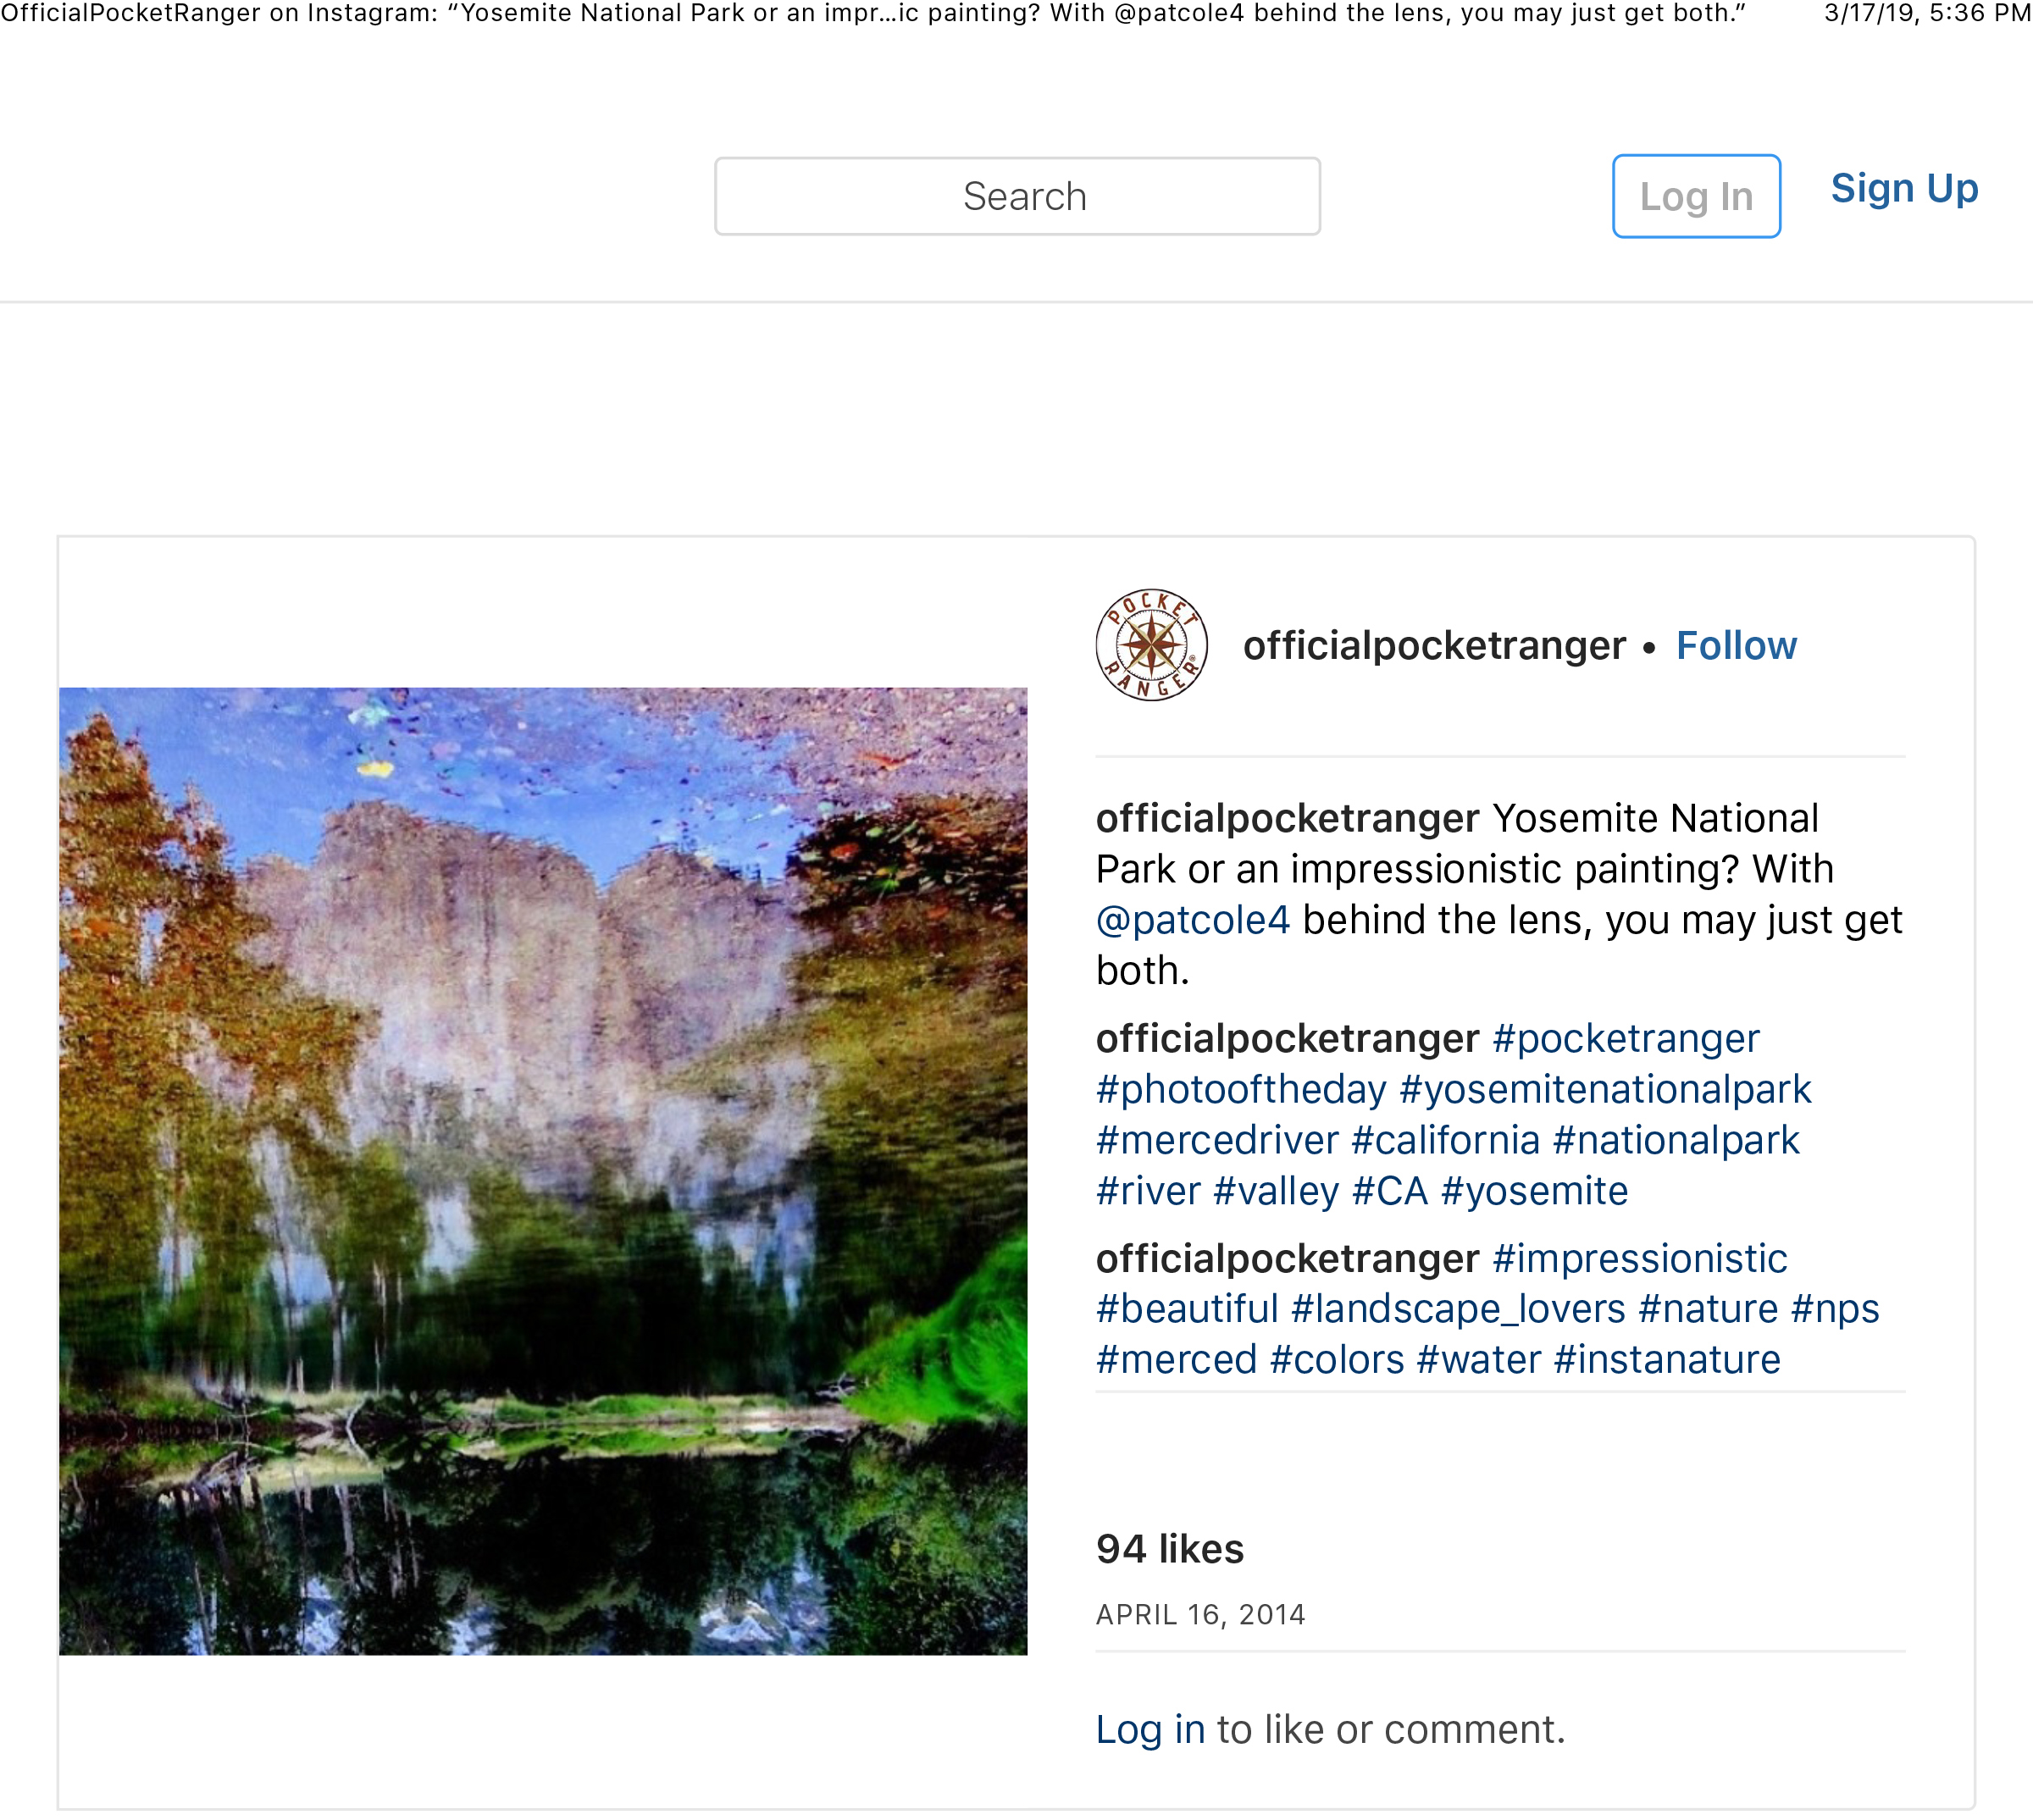 """OfficialPocketRanger on Instagram_ """"Yosemite National Park or an impressionistic painting_ With @patcole4 behind the lens, you may just get both."""" copy.jpg"""